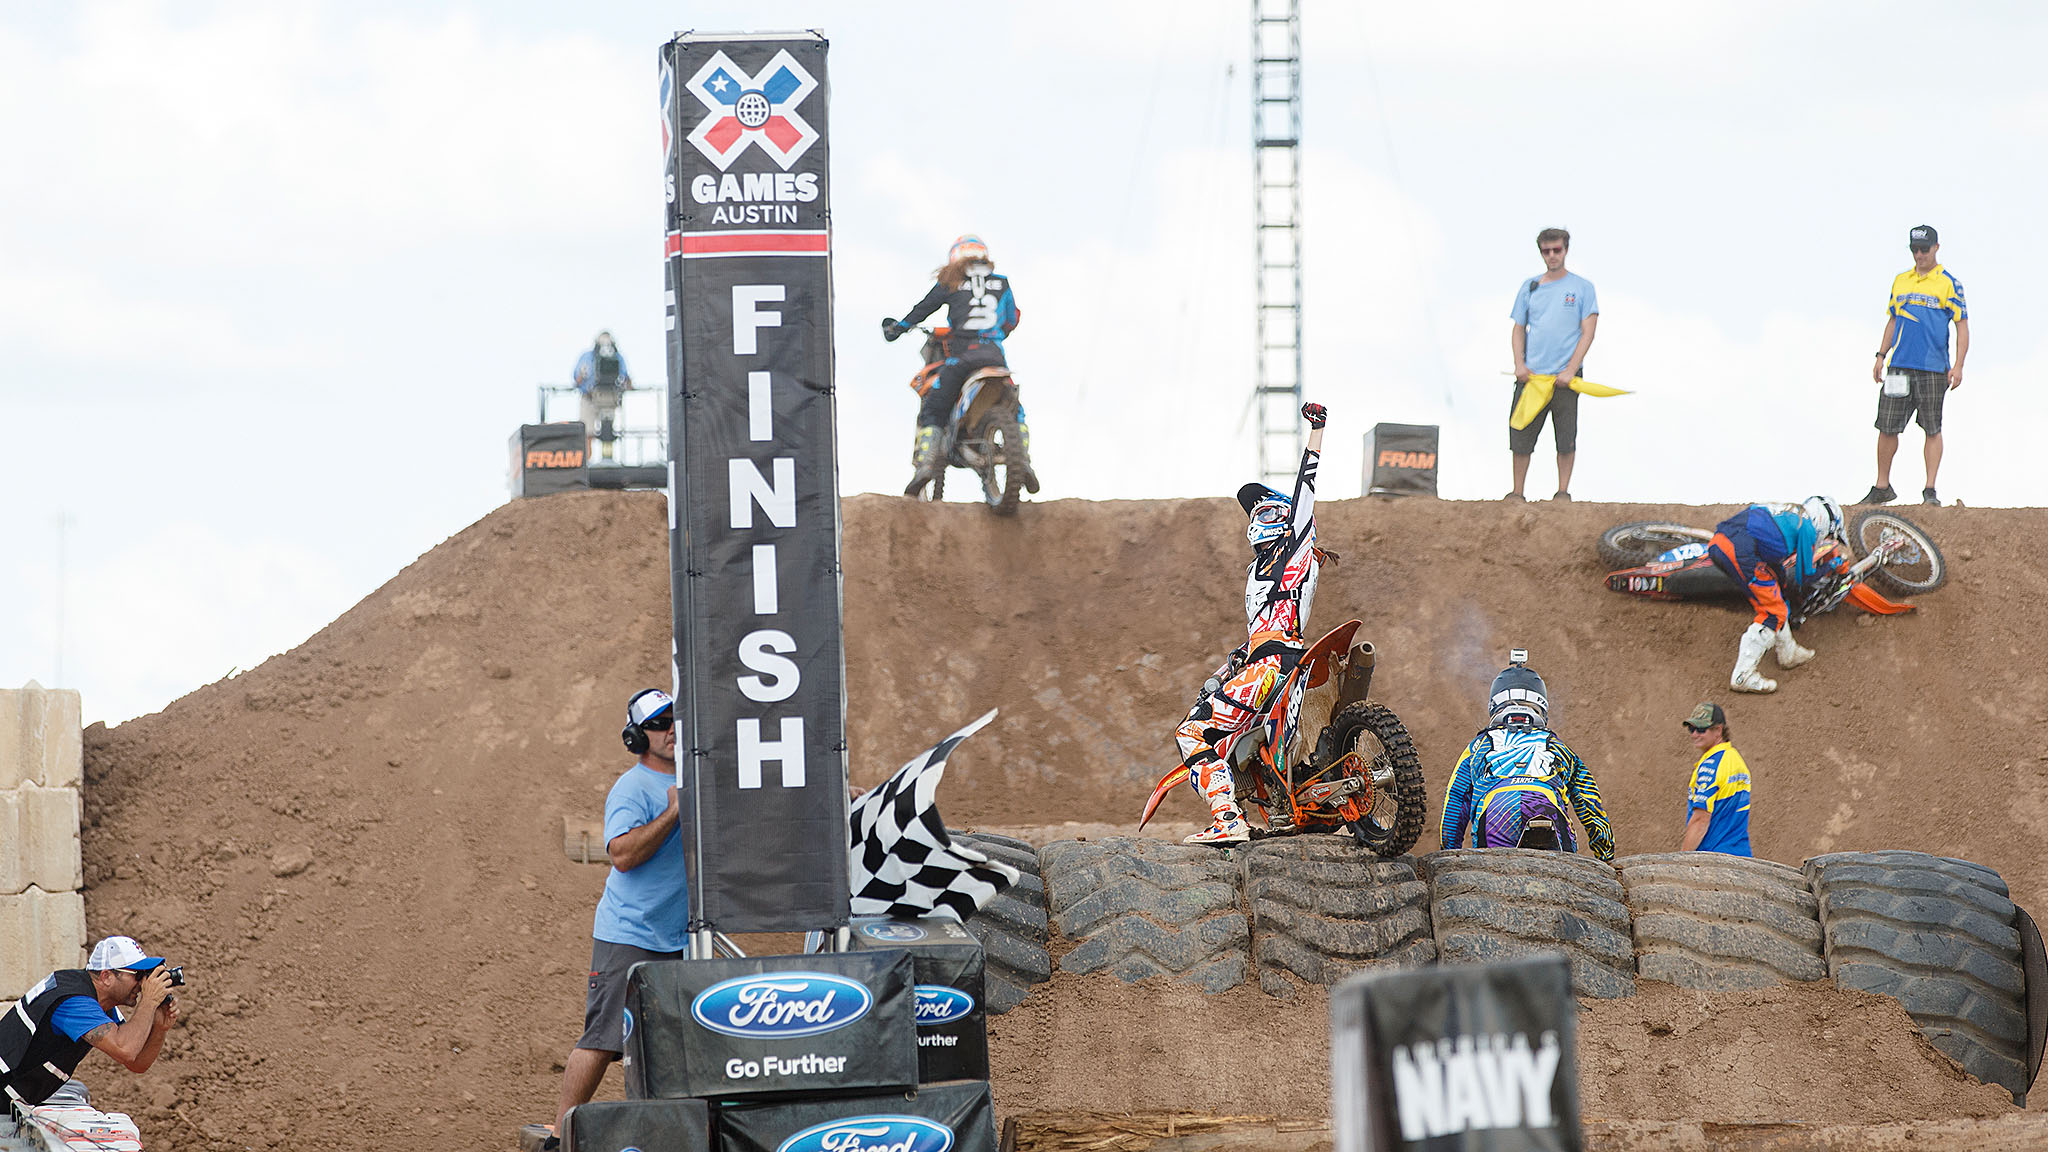 Kacy Martinez, 23, is just the third woman to top the podium since her sport's debut at X Games Los Angeles 2011, where she won bronze. Maria Forsberg and Laia Sanz have previously dominated the women's field. Forsberg announced her retirement from competition last October and is expecting her first child this fall; Sanz opted to compete in the Enduro World Championships in Finland this week.